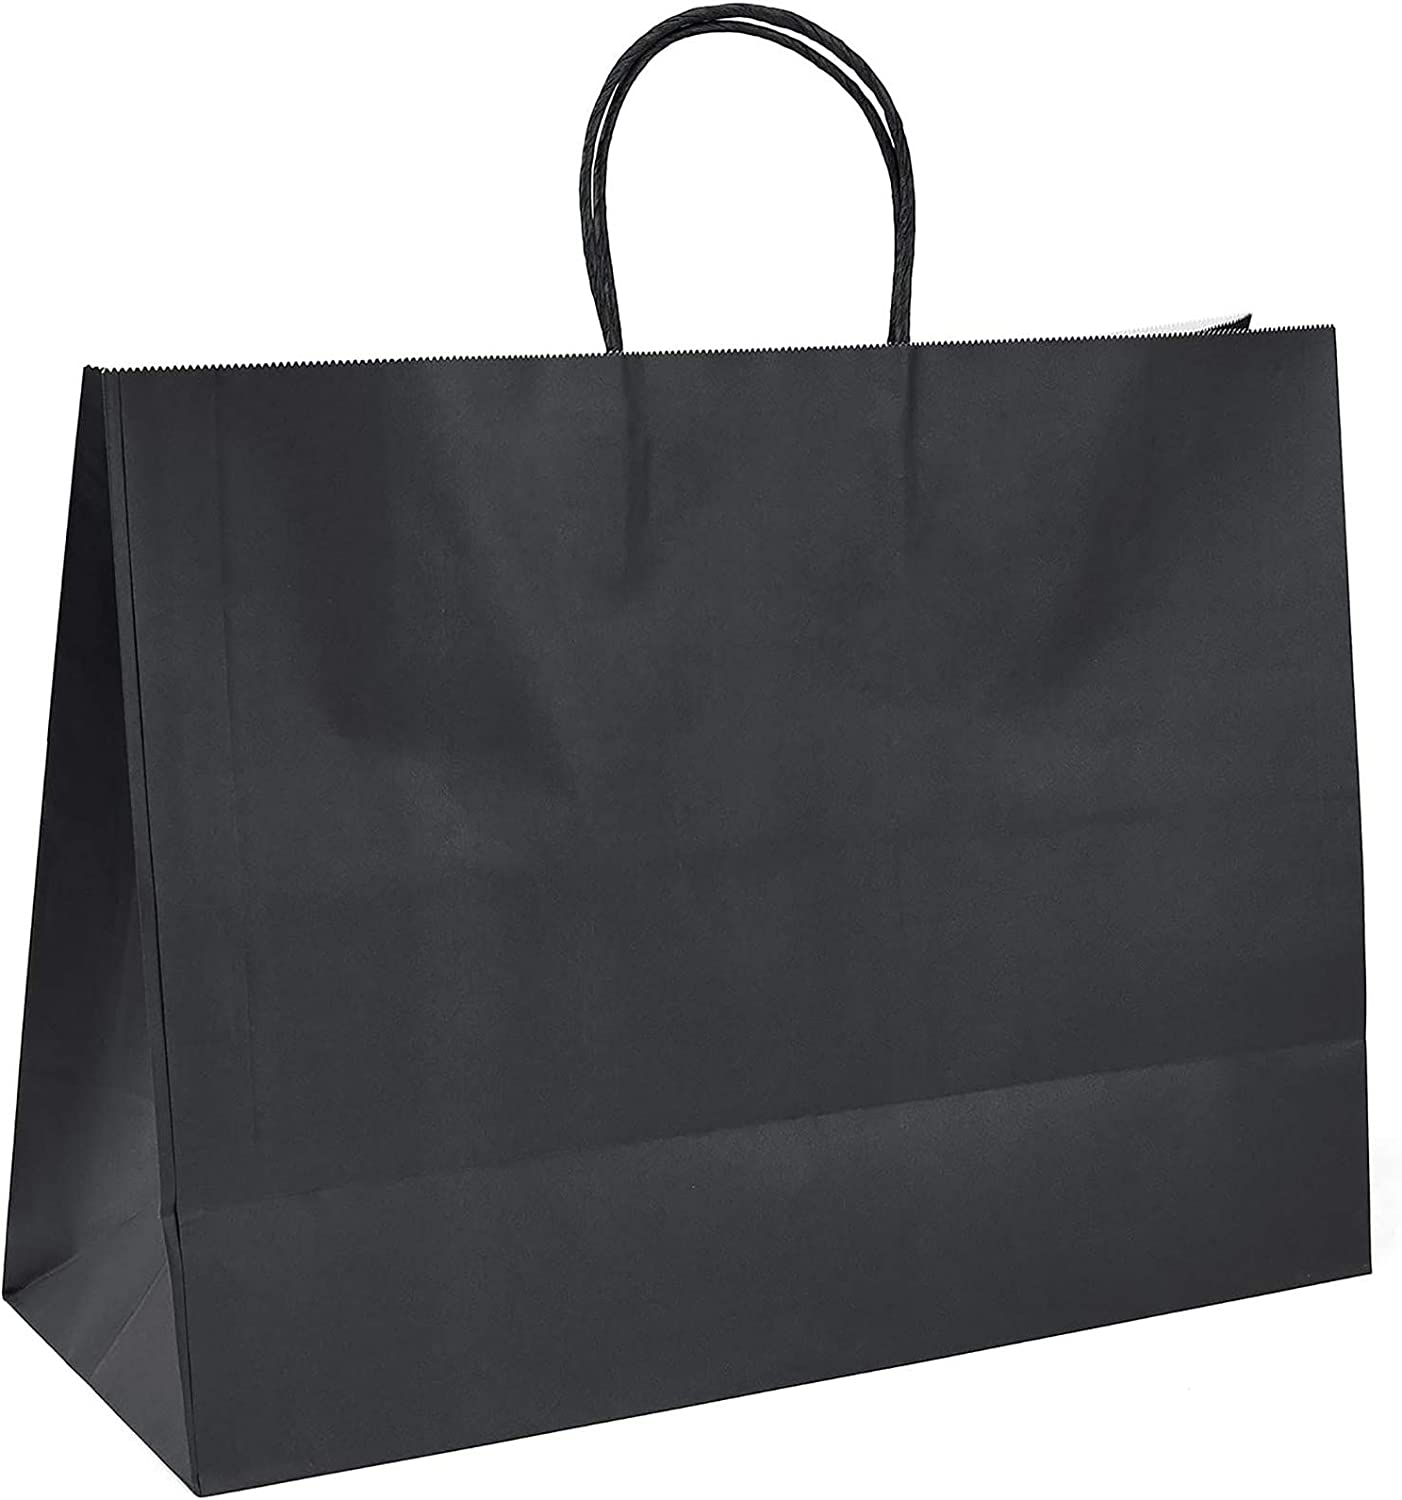 """Black XQINCAI 25Pcs 12.6/"""" L x 4.4/"""" W x 9.9/"""" H Kraft Paper Gift Bags Kraft Paper Bags with Handles,for Shopping//Party Favor//Gift Bags//Retail//Packaging//Parties and Other Occasions"""